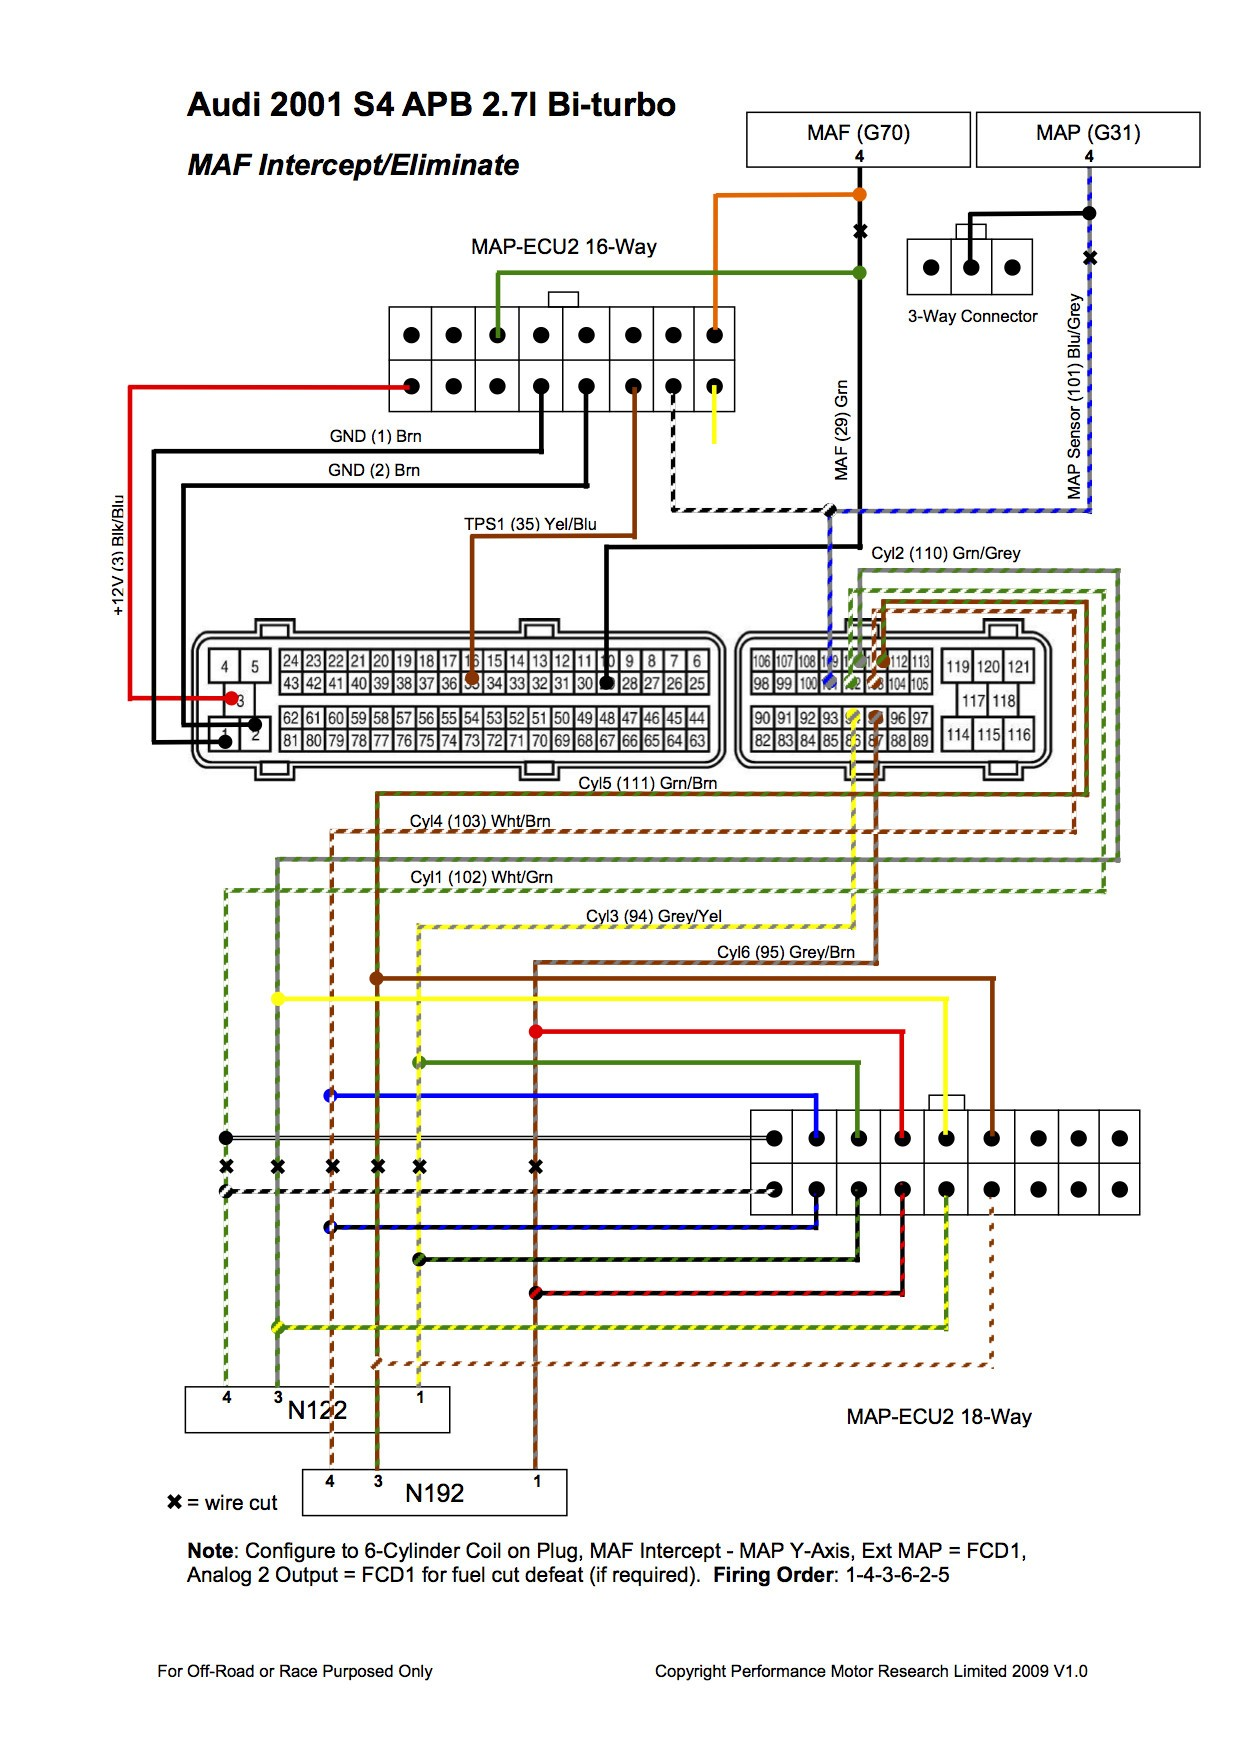 Ecu Wiring Diagram Pdf Experience Of Subaru Maruti Alto Electrical Library Rh 19 Akszer Eu For 1999 1995 Mark8